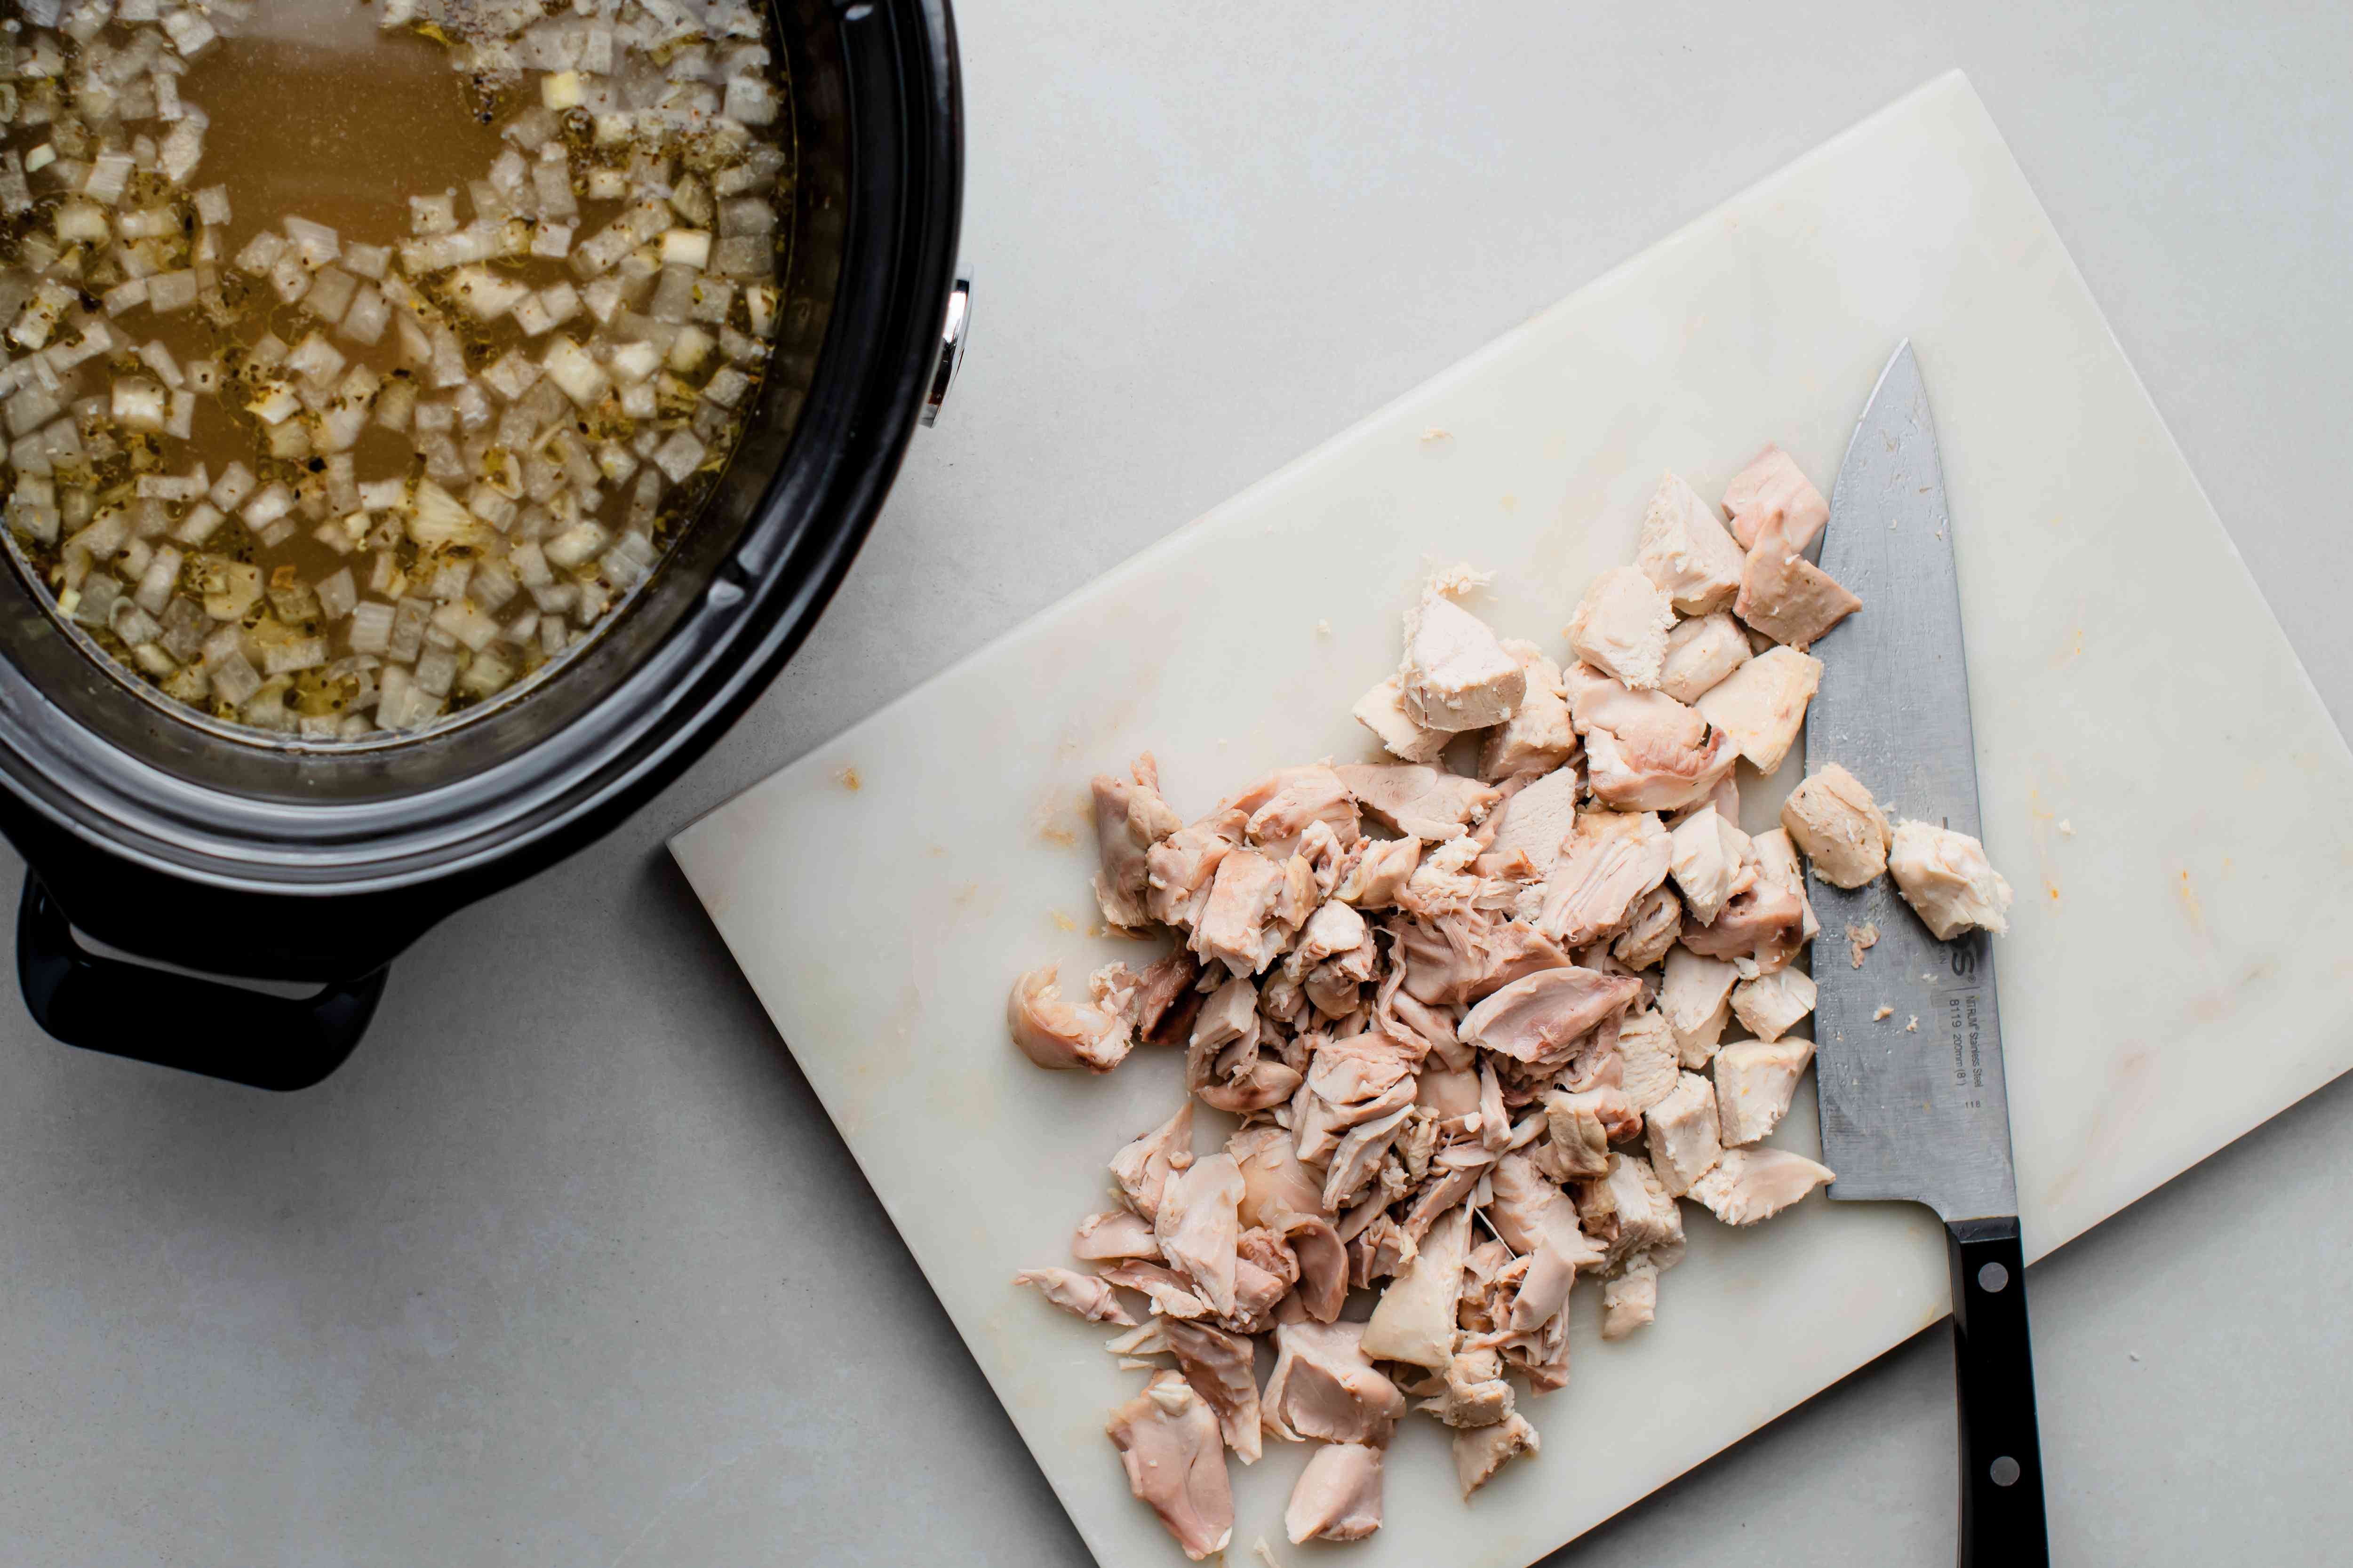 diced chicken on a cutting board